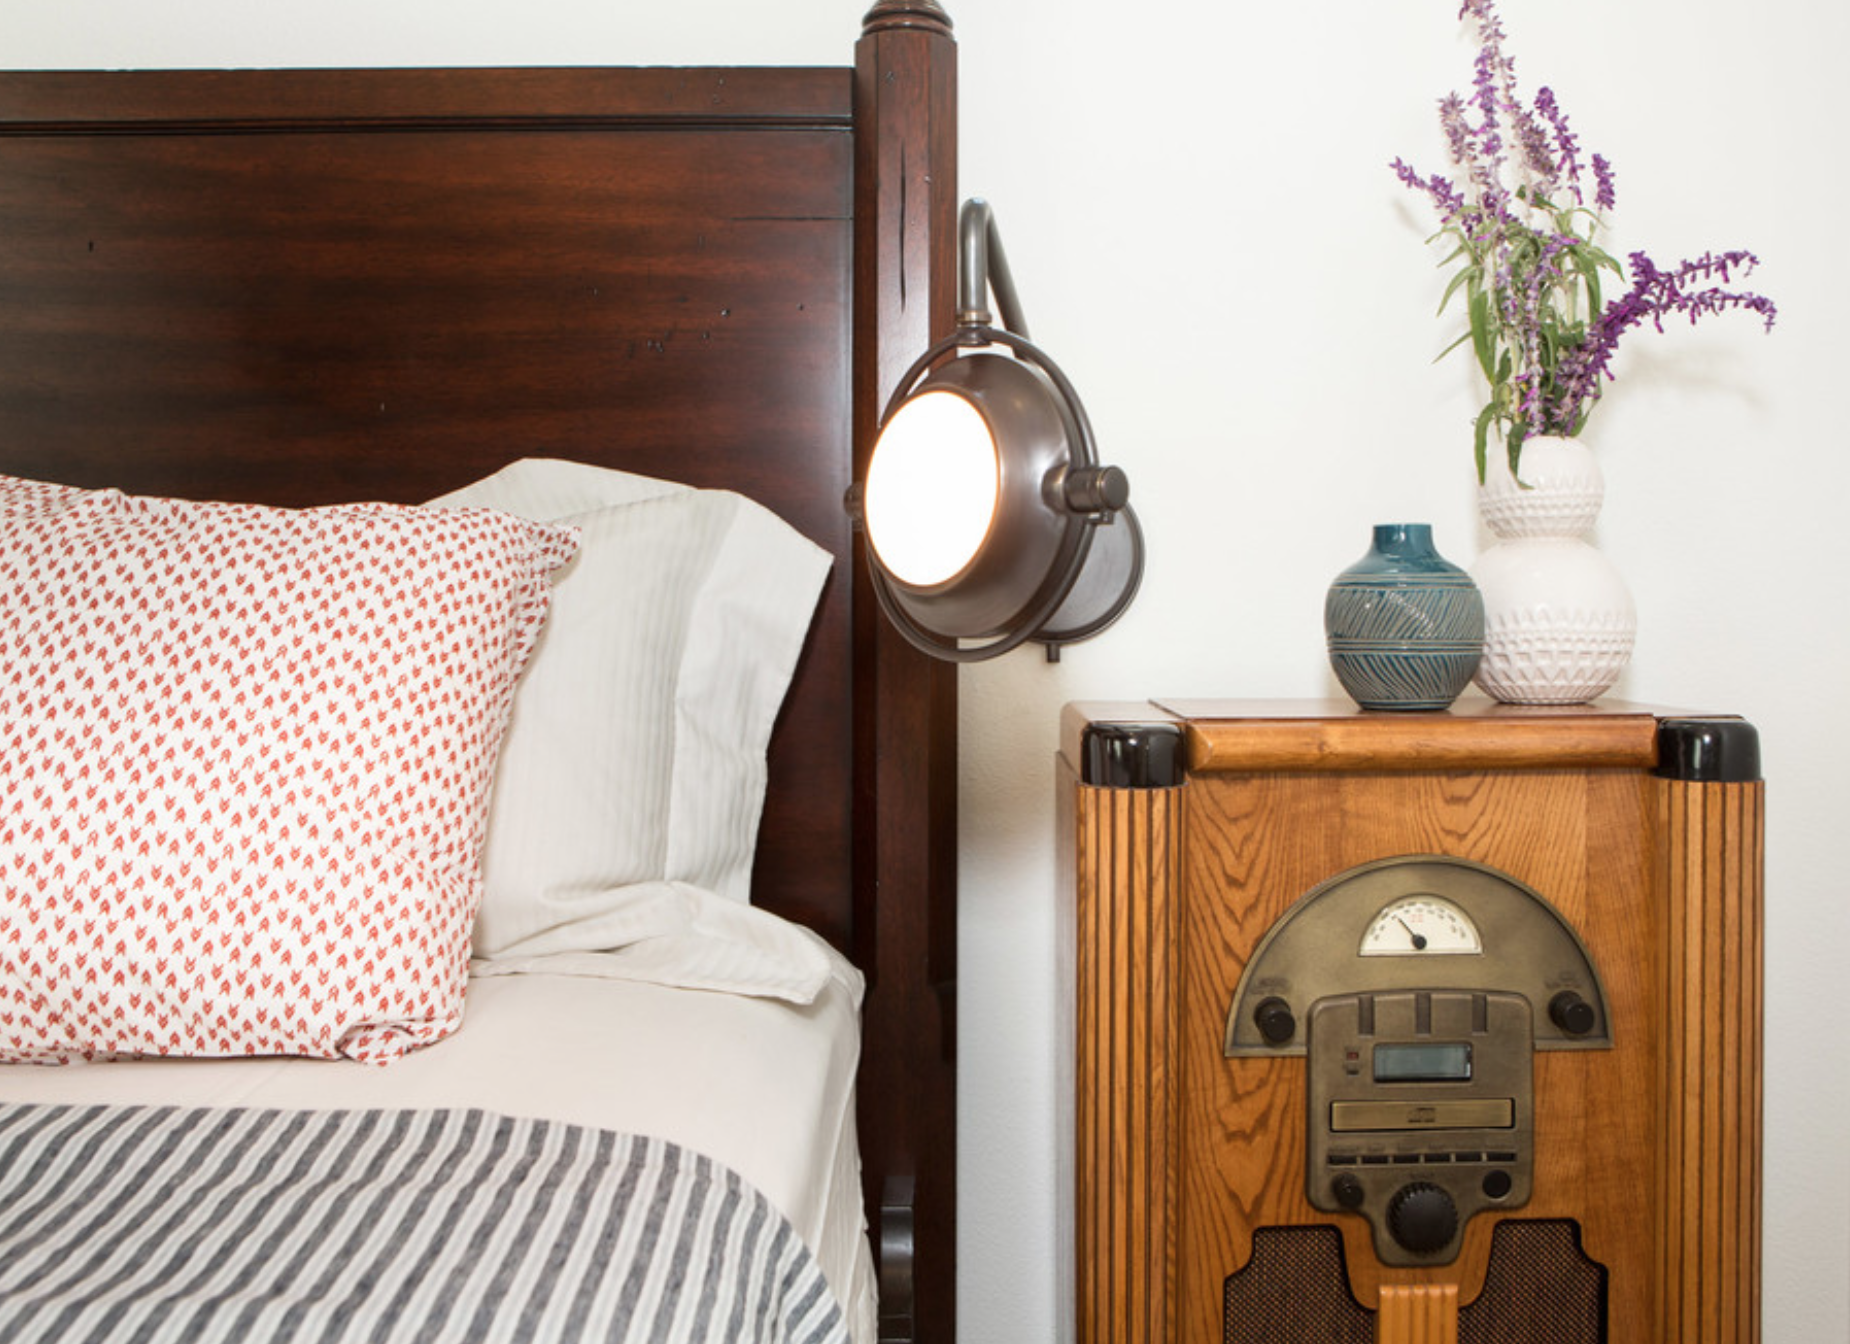 The 10 Commandments of Designing Small Spaces